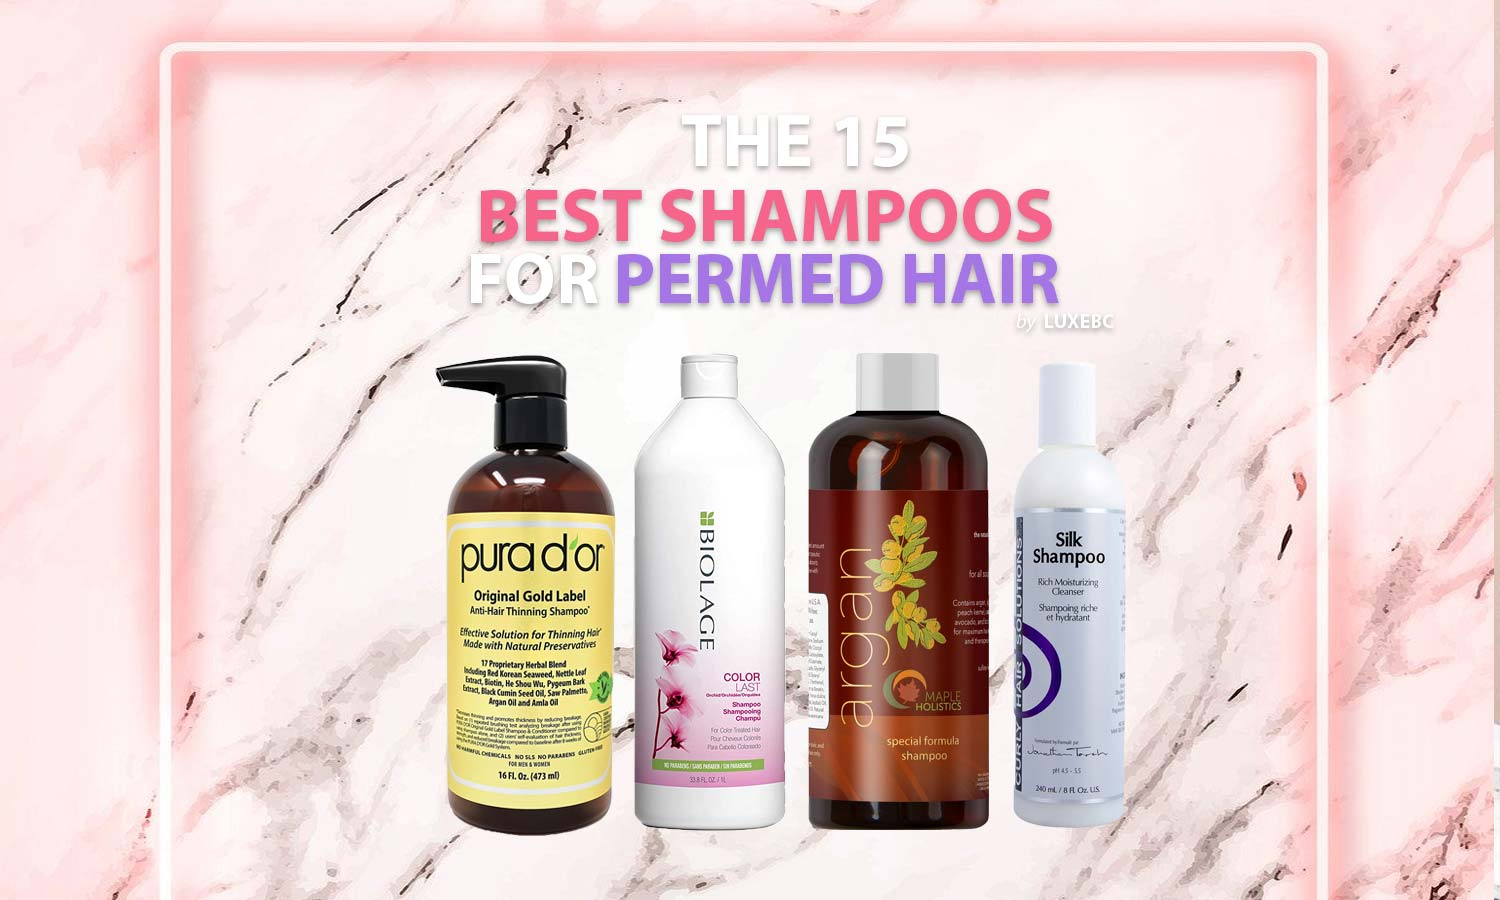 Best shampoos for permed hair